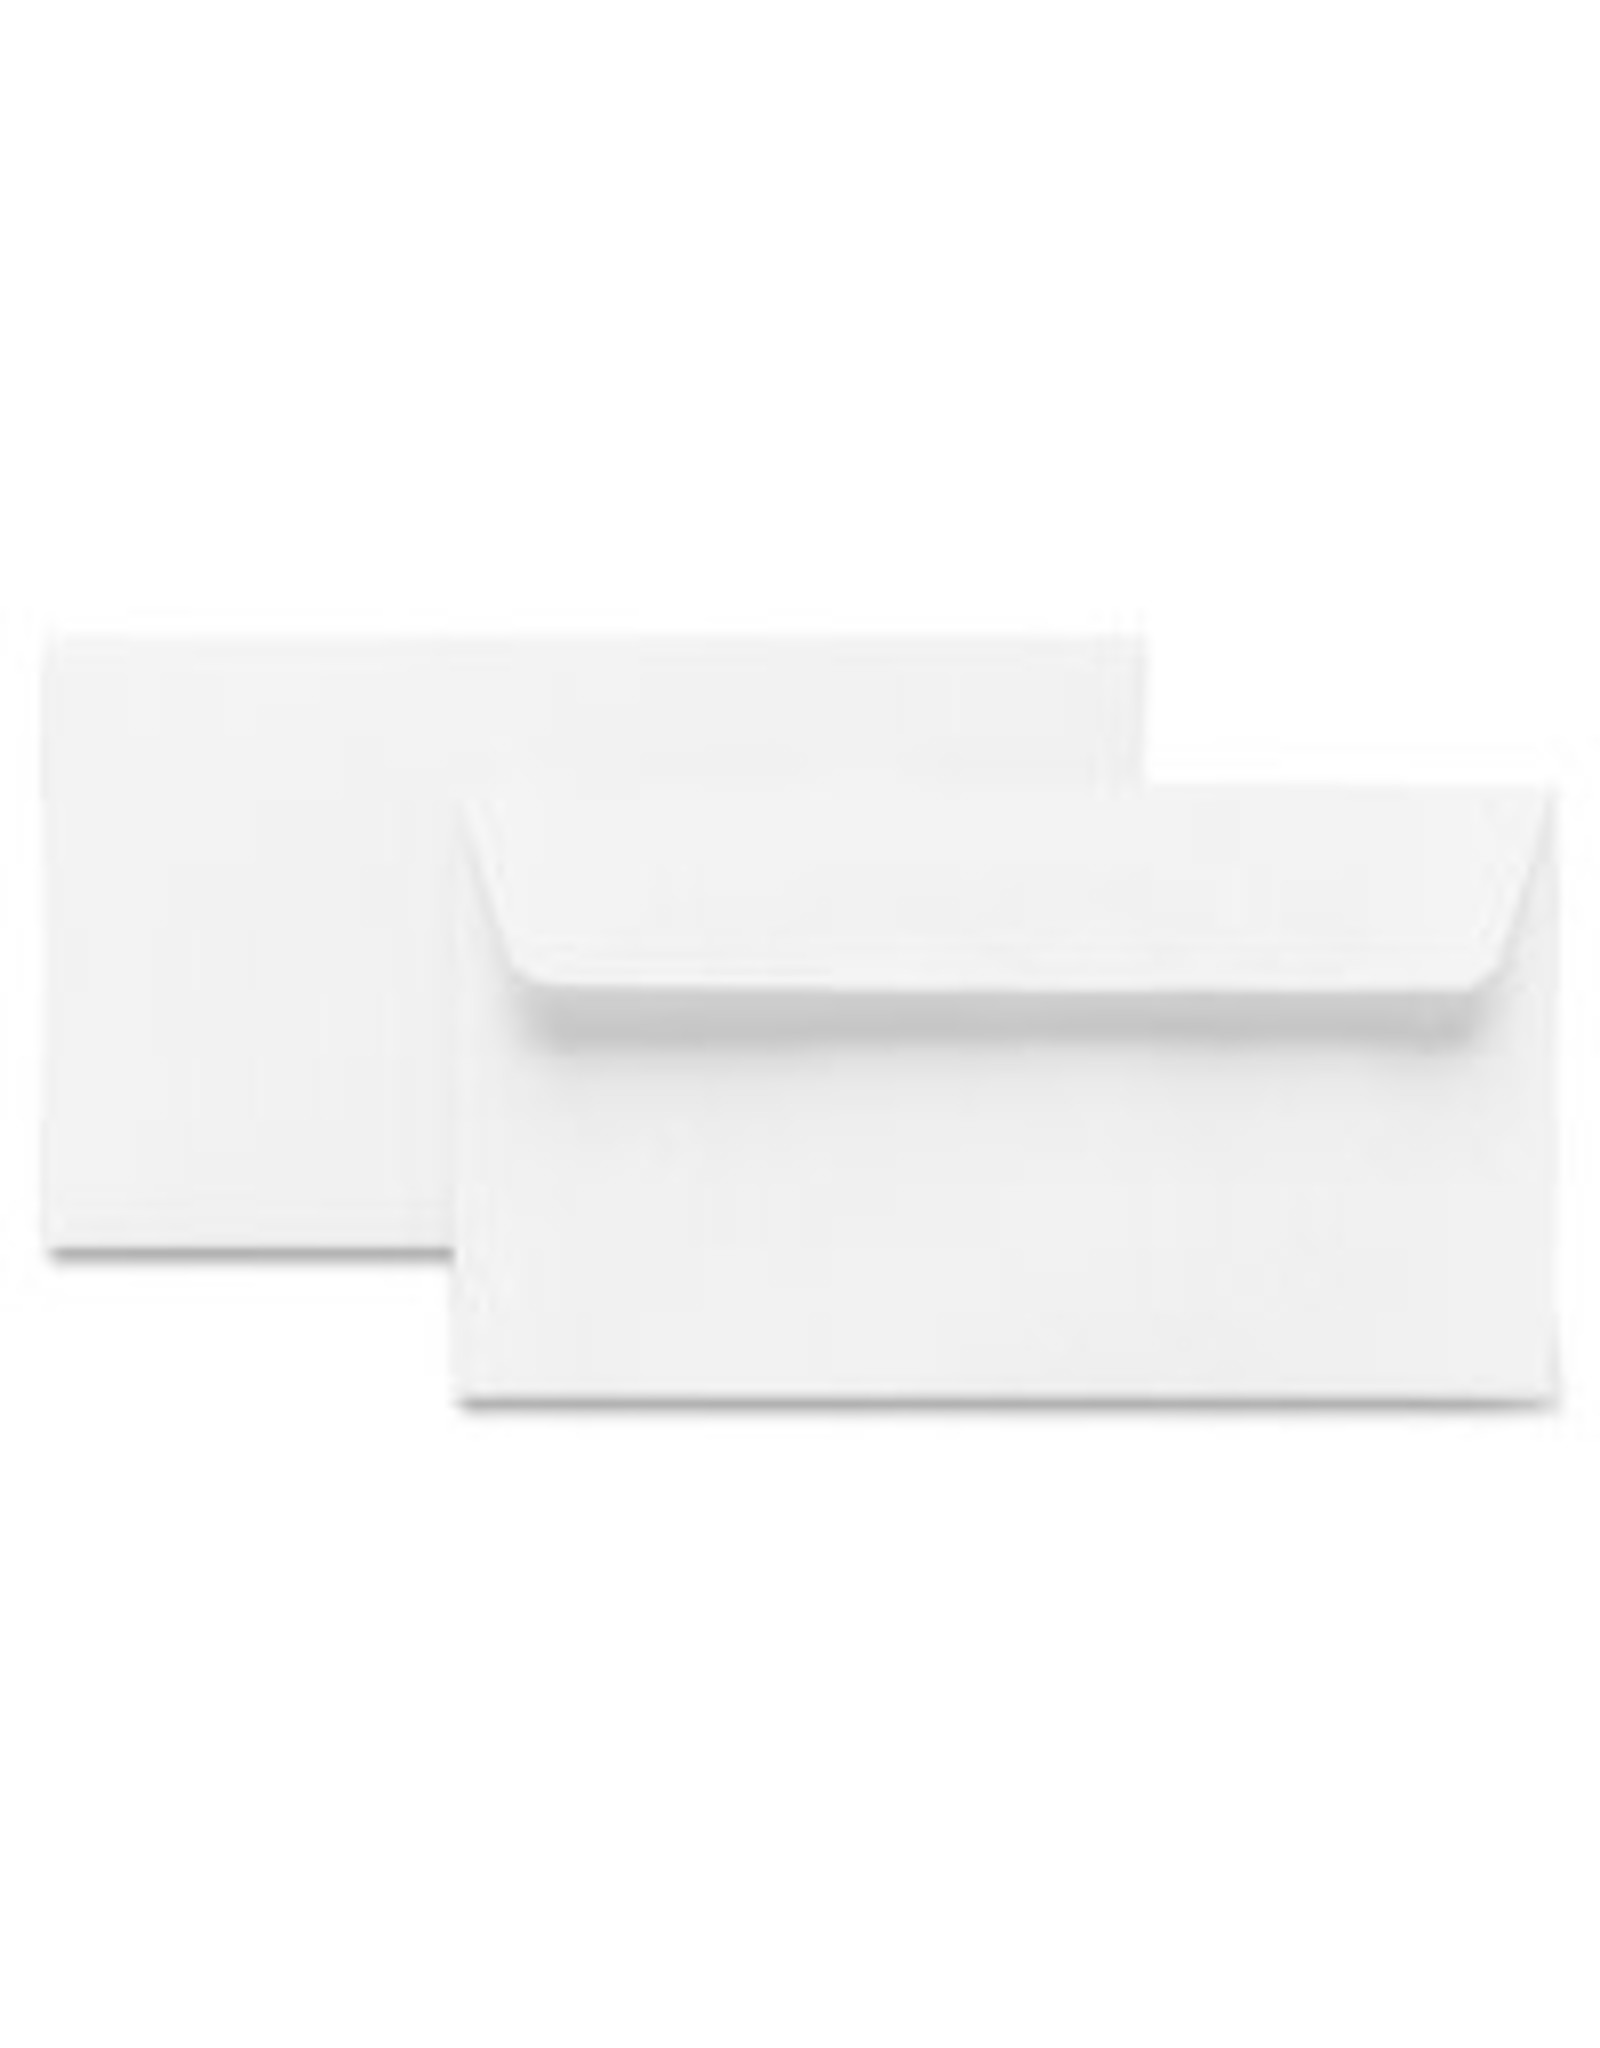 Hilroy ENVELOPE-PRESS-IT SEAL-IT #10 PLAIN , 50/BOX